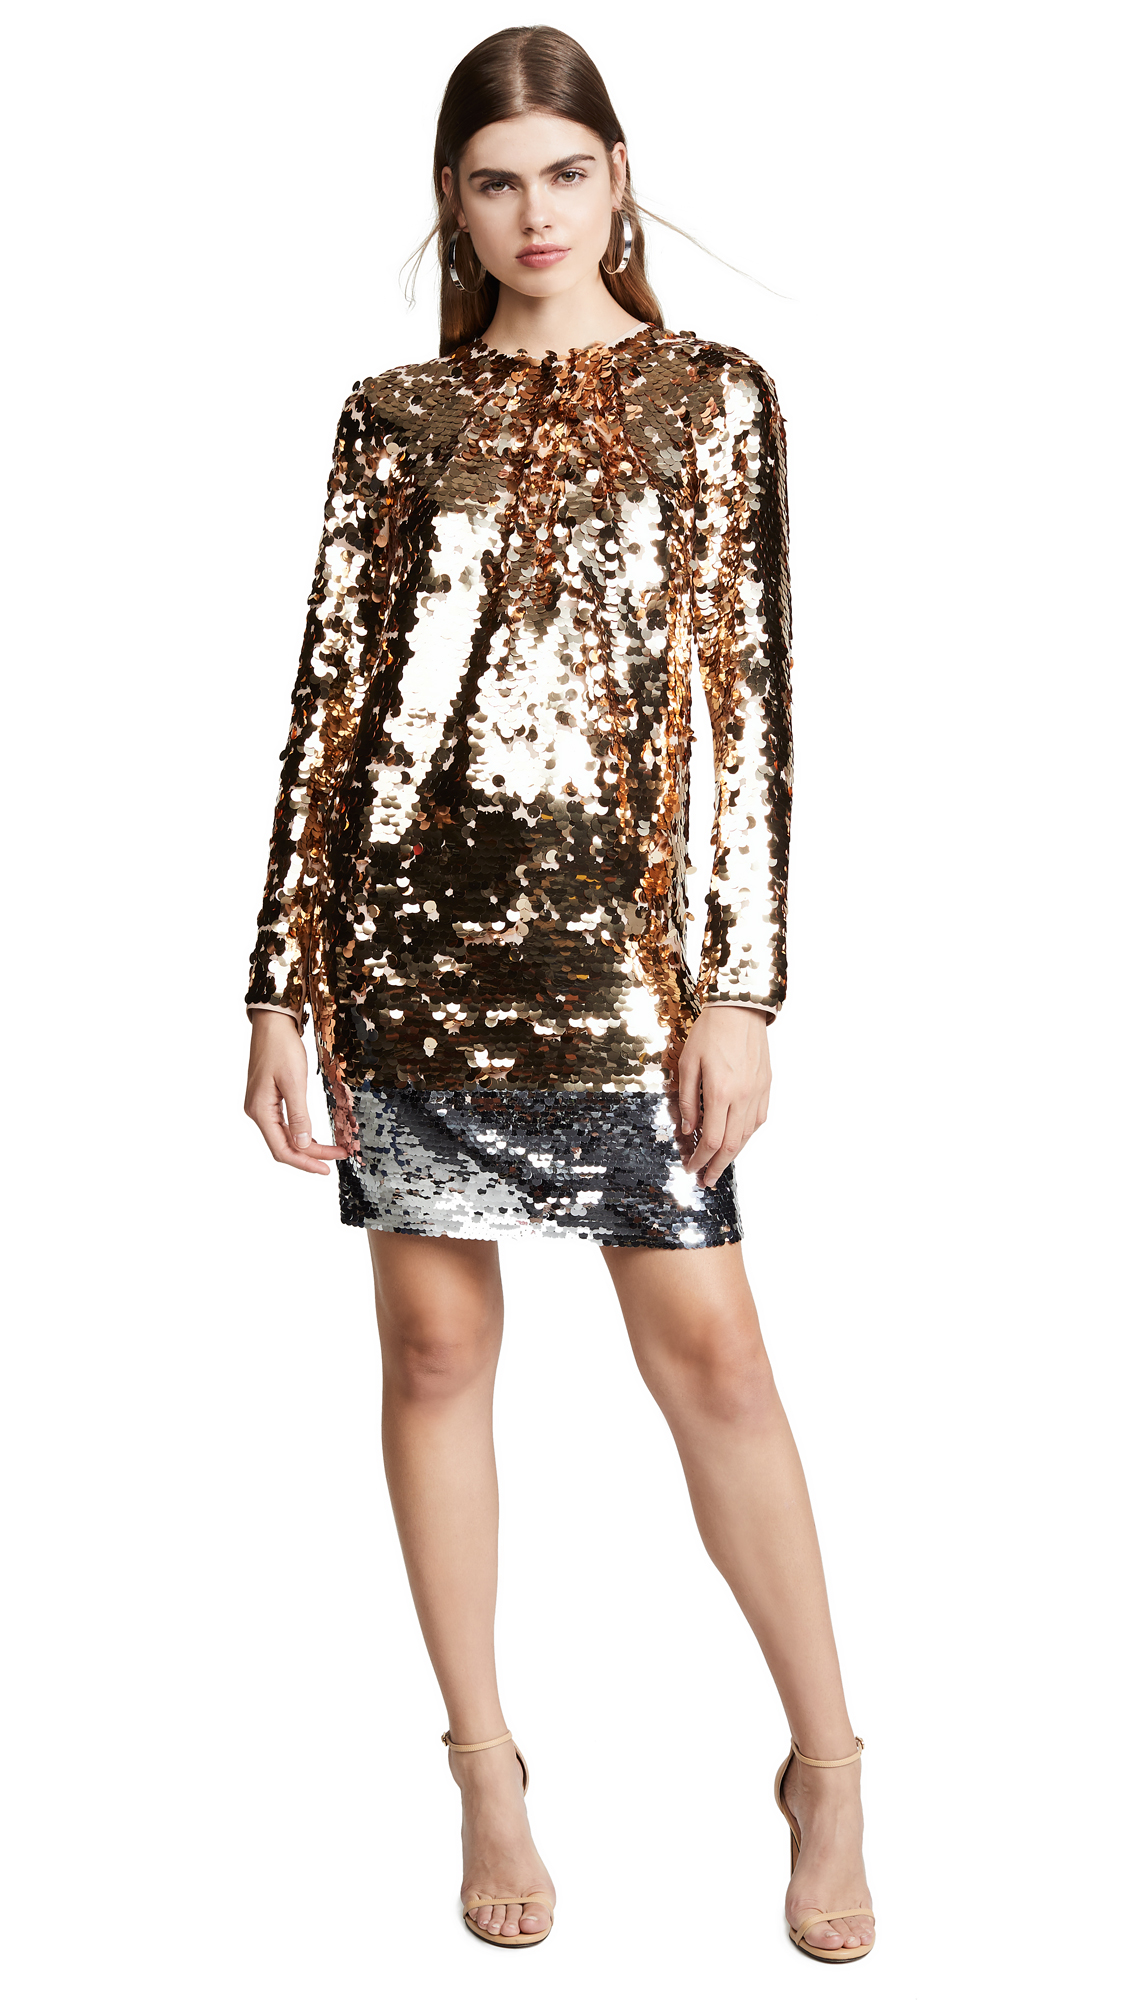 No. 21 Sequin Mini Dress - Multi